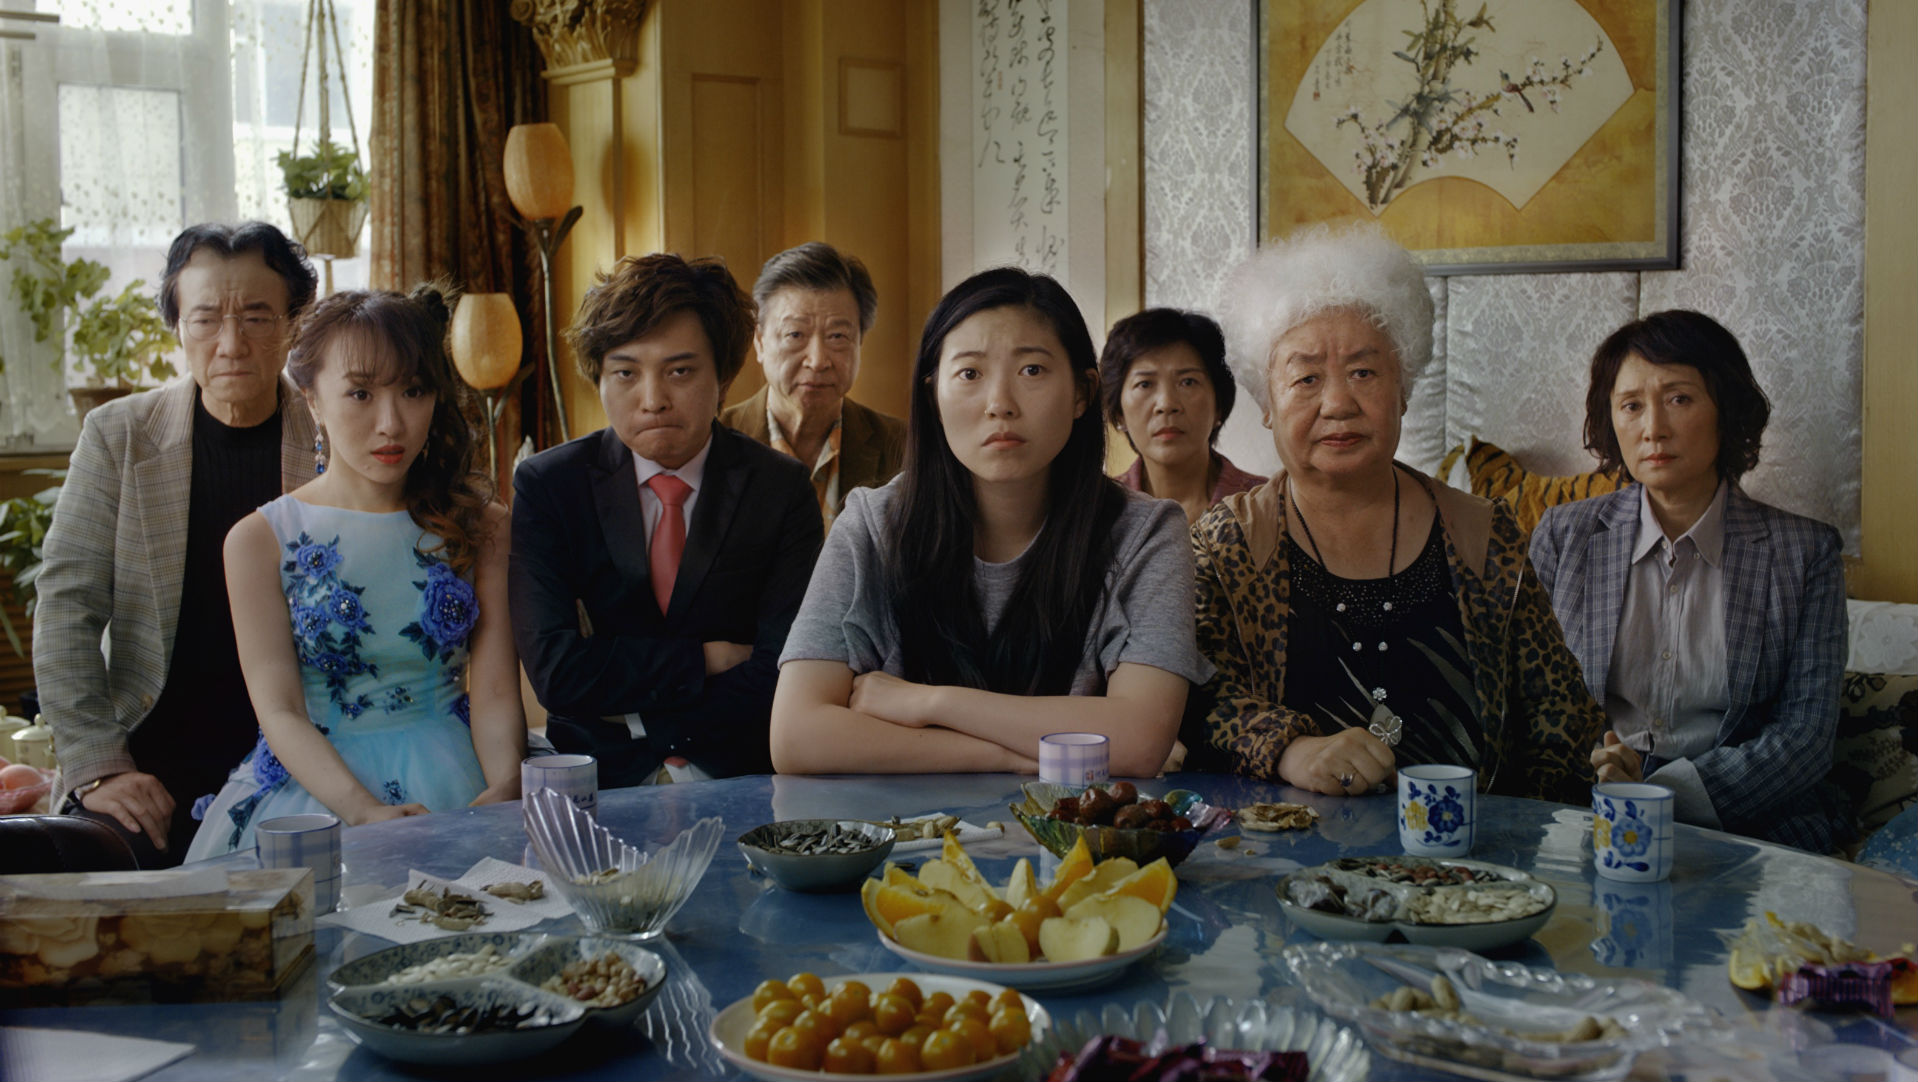 Lulu Wang Interview: The Director Talks THE FAREWELL, Awkwafina, and Living in Trump's America